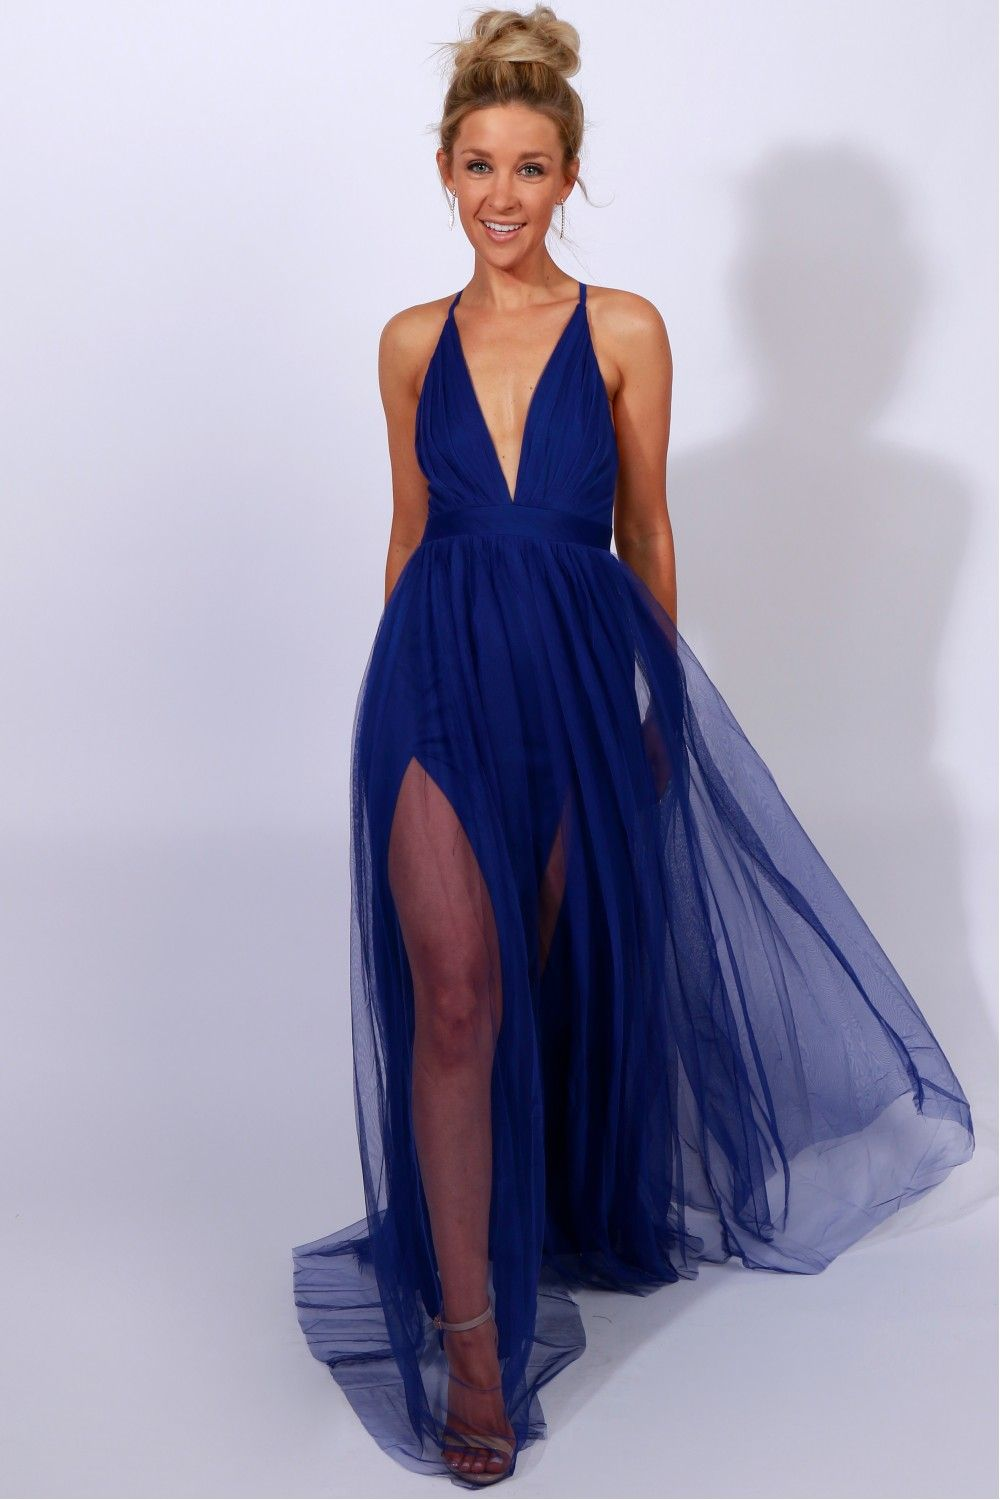 7e4c2decb8 Sheer Mesh Maxi Dress Blue A maxi dress with a sheer mesh overlay featuring  adjustable straps